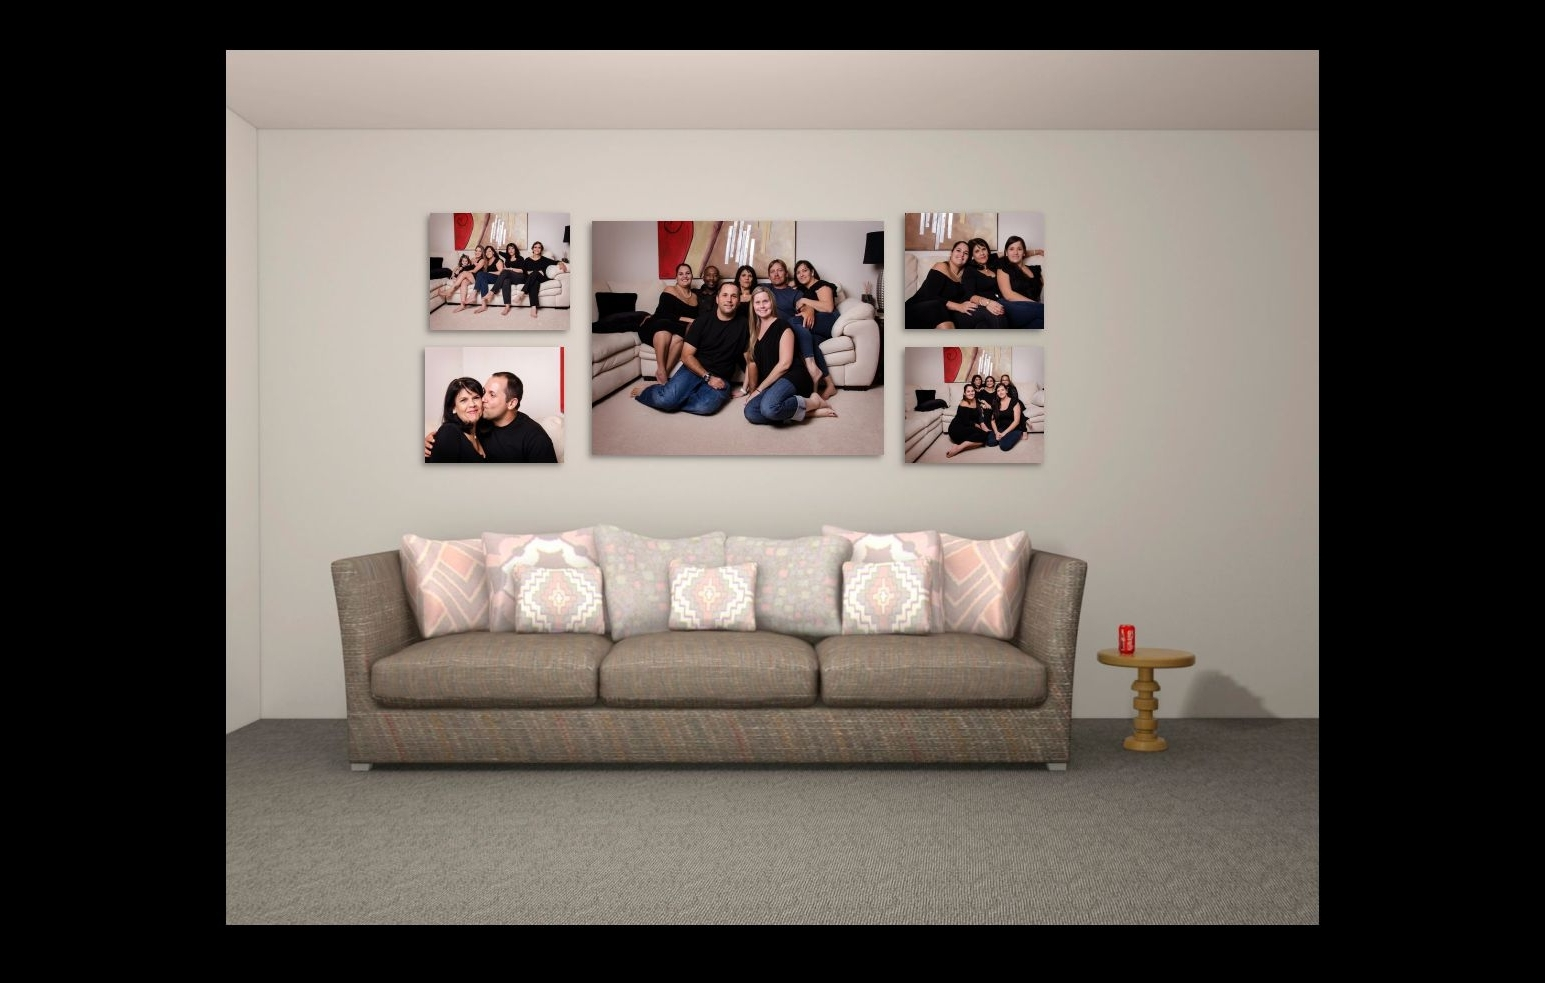 Photography Canvas Wall Art Intended For Popular You Seen It? Canvas Wall Art Design! Many People (View 12 of 15)